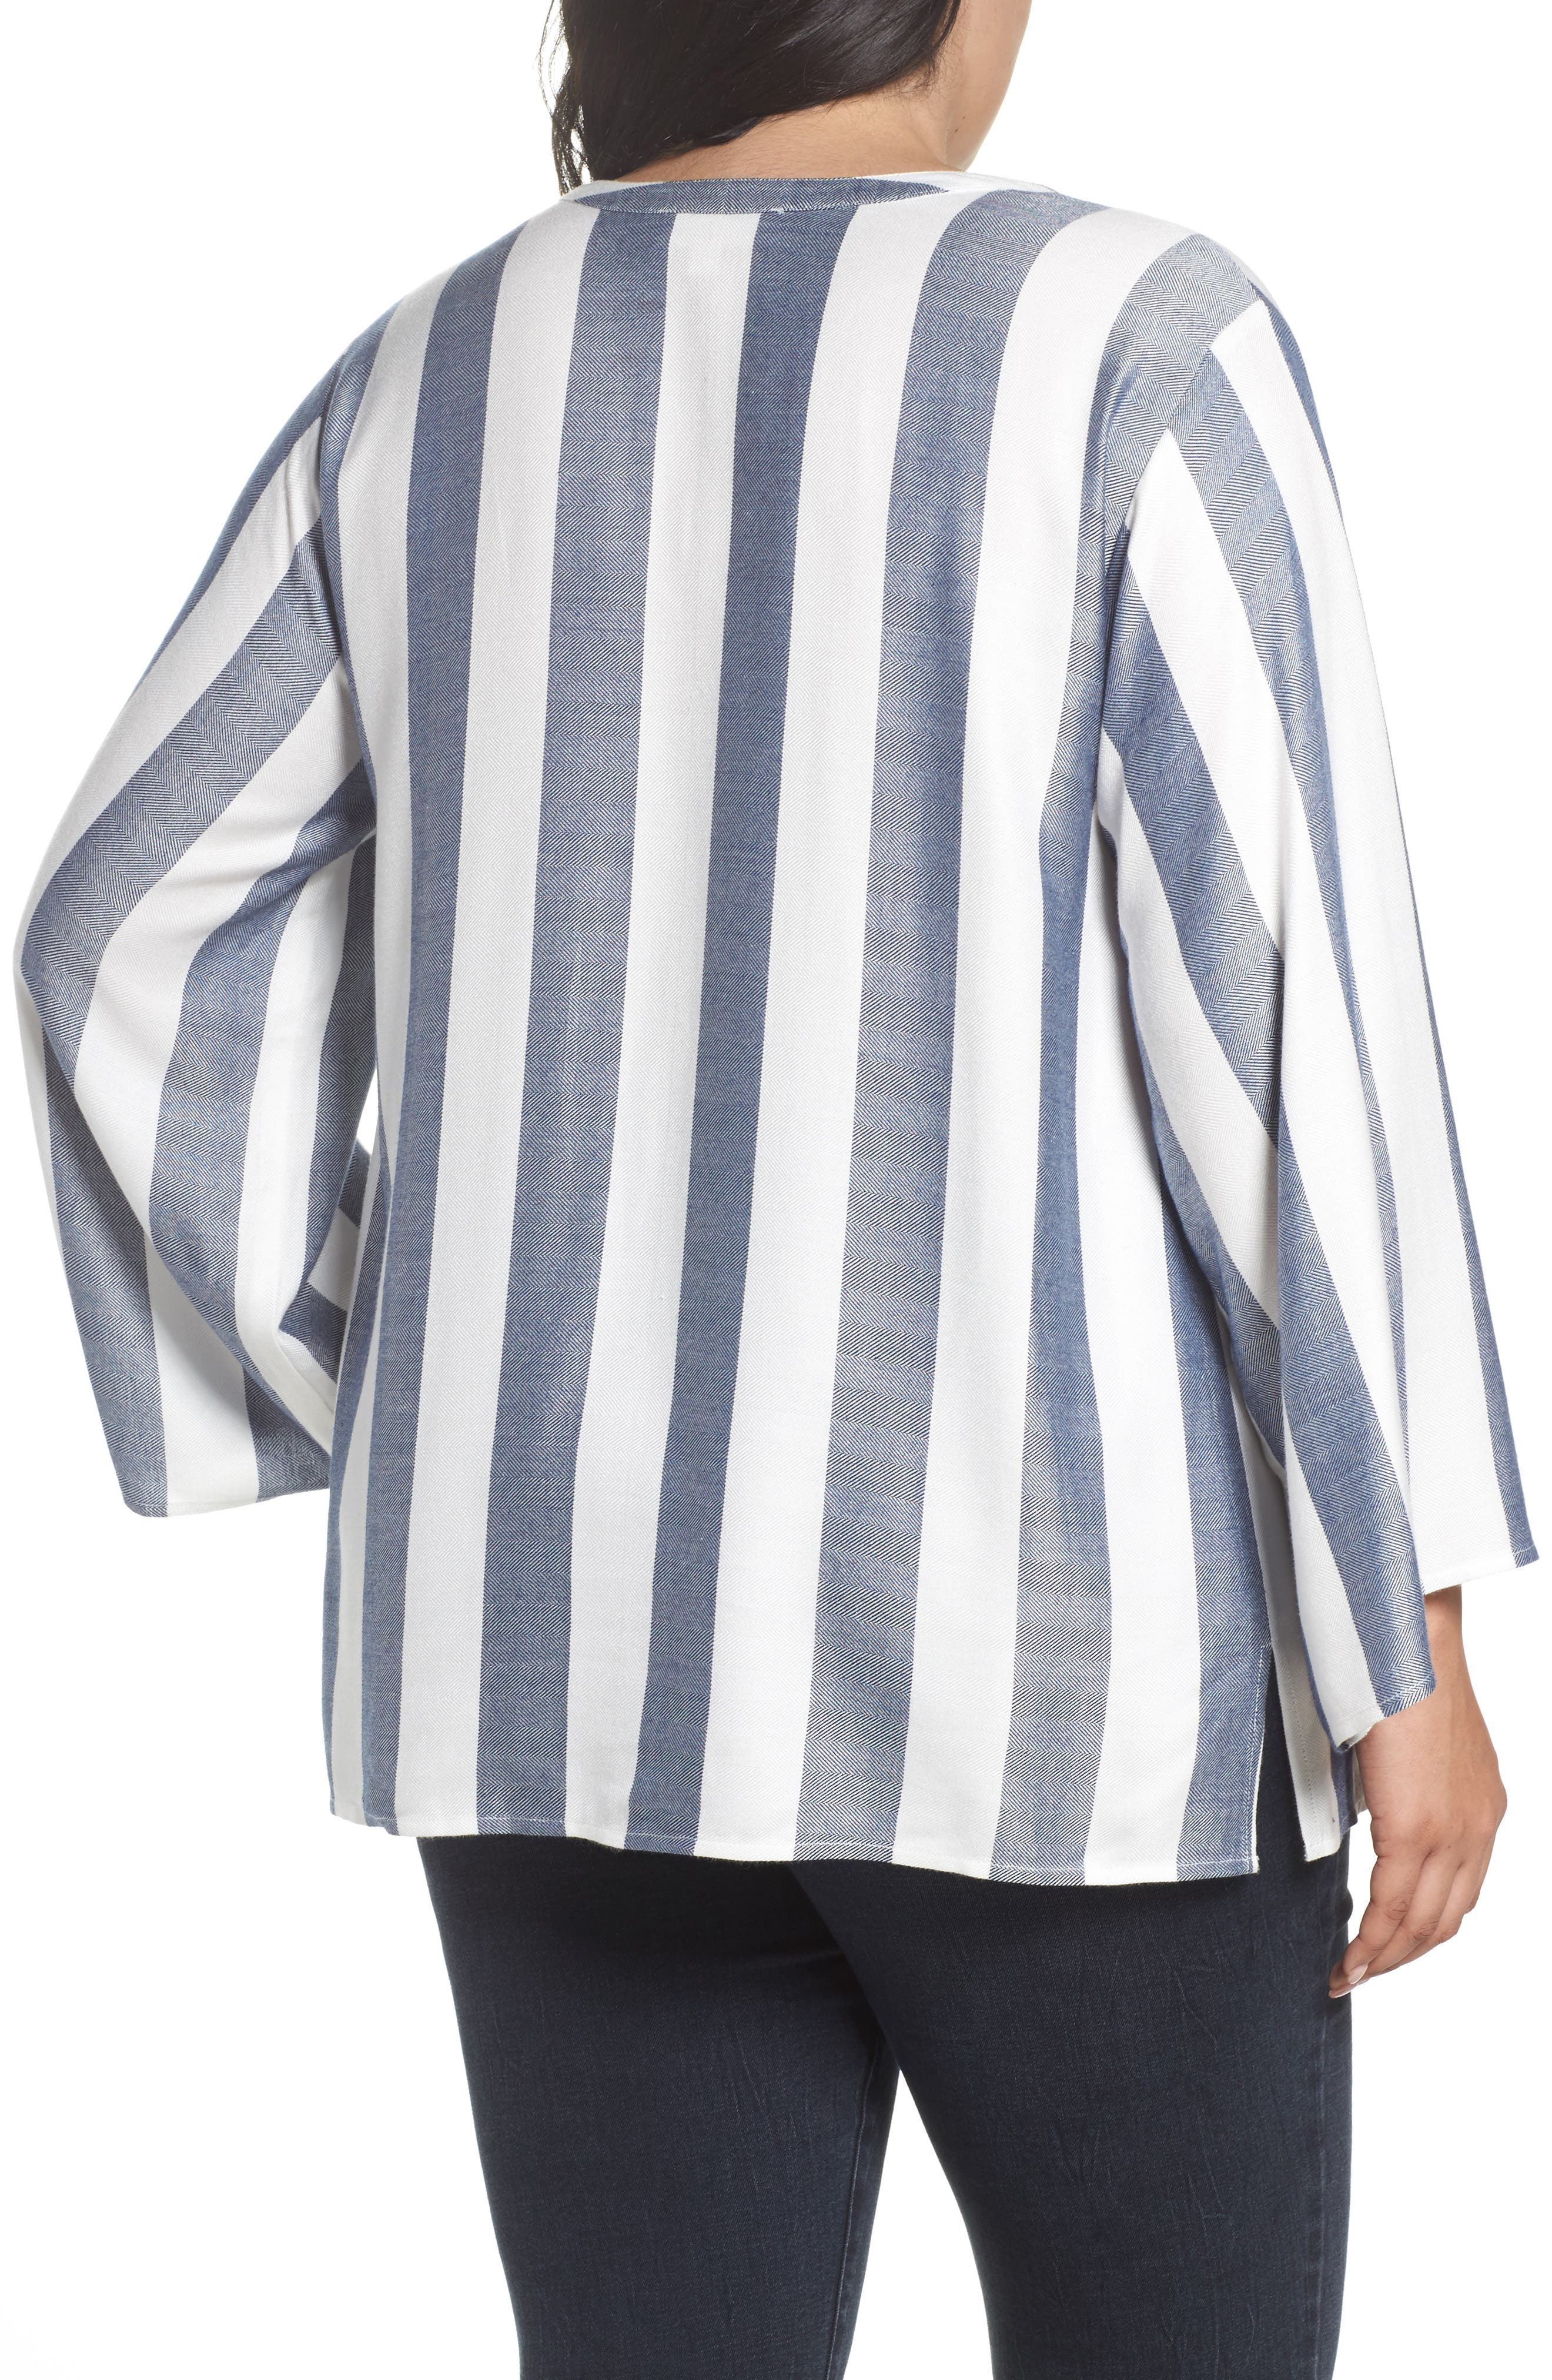 Bell Sleeve Stripe Top,                             Alternate thumbnail 2, color,                             453